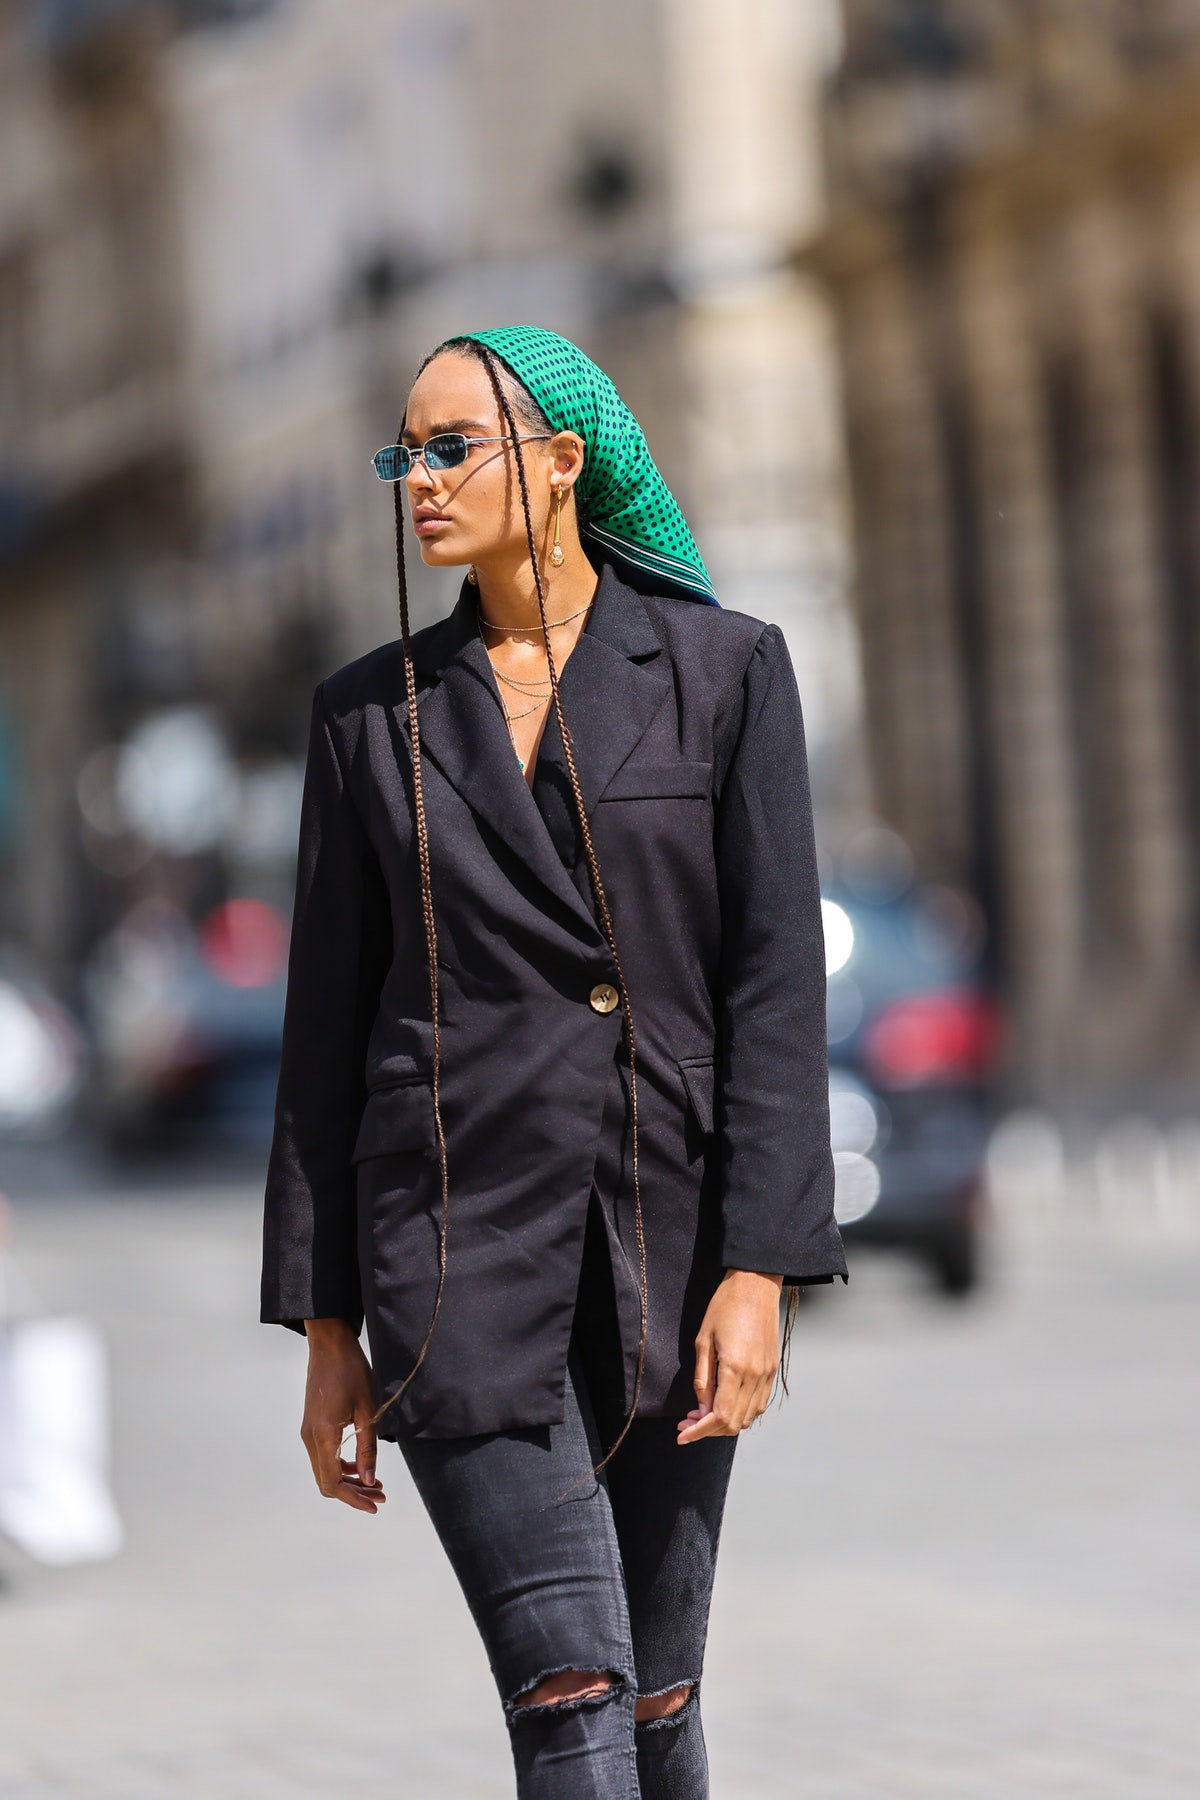 Alicia Aylies wears a green bandana scarf in the way classic early 2000s celebrities wore bandanas.